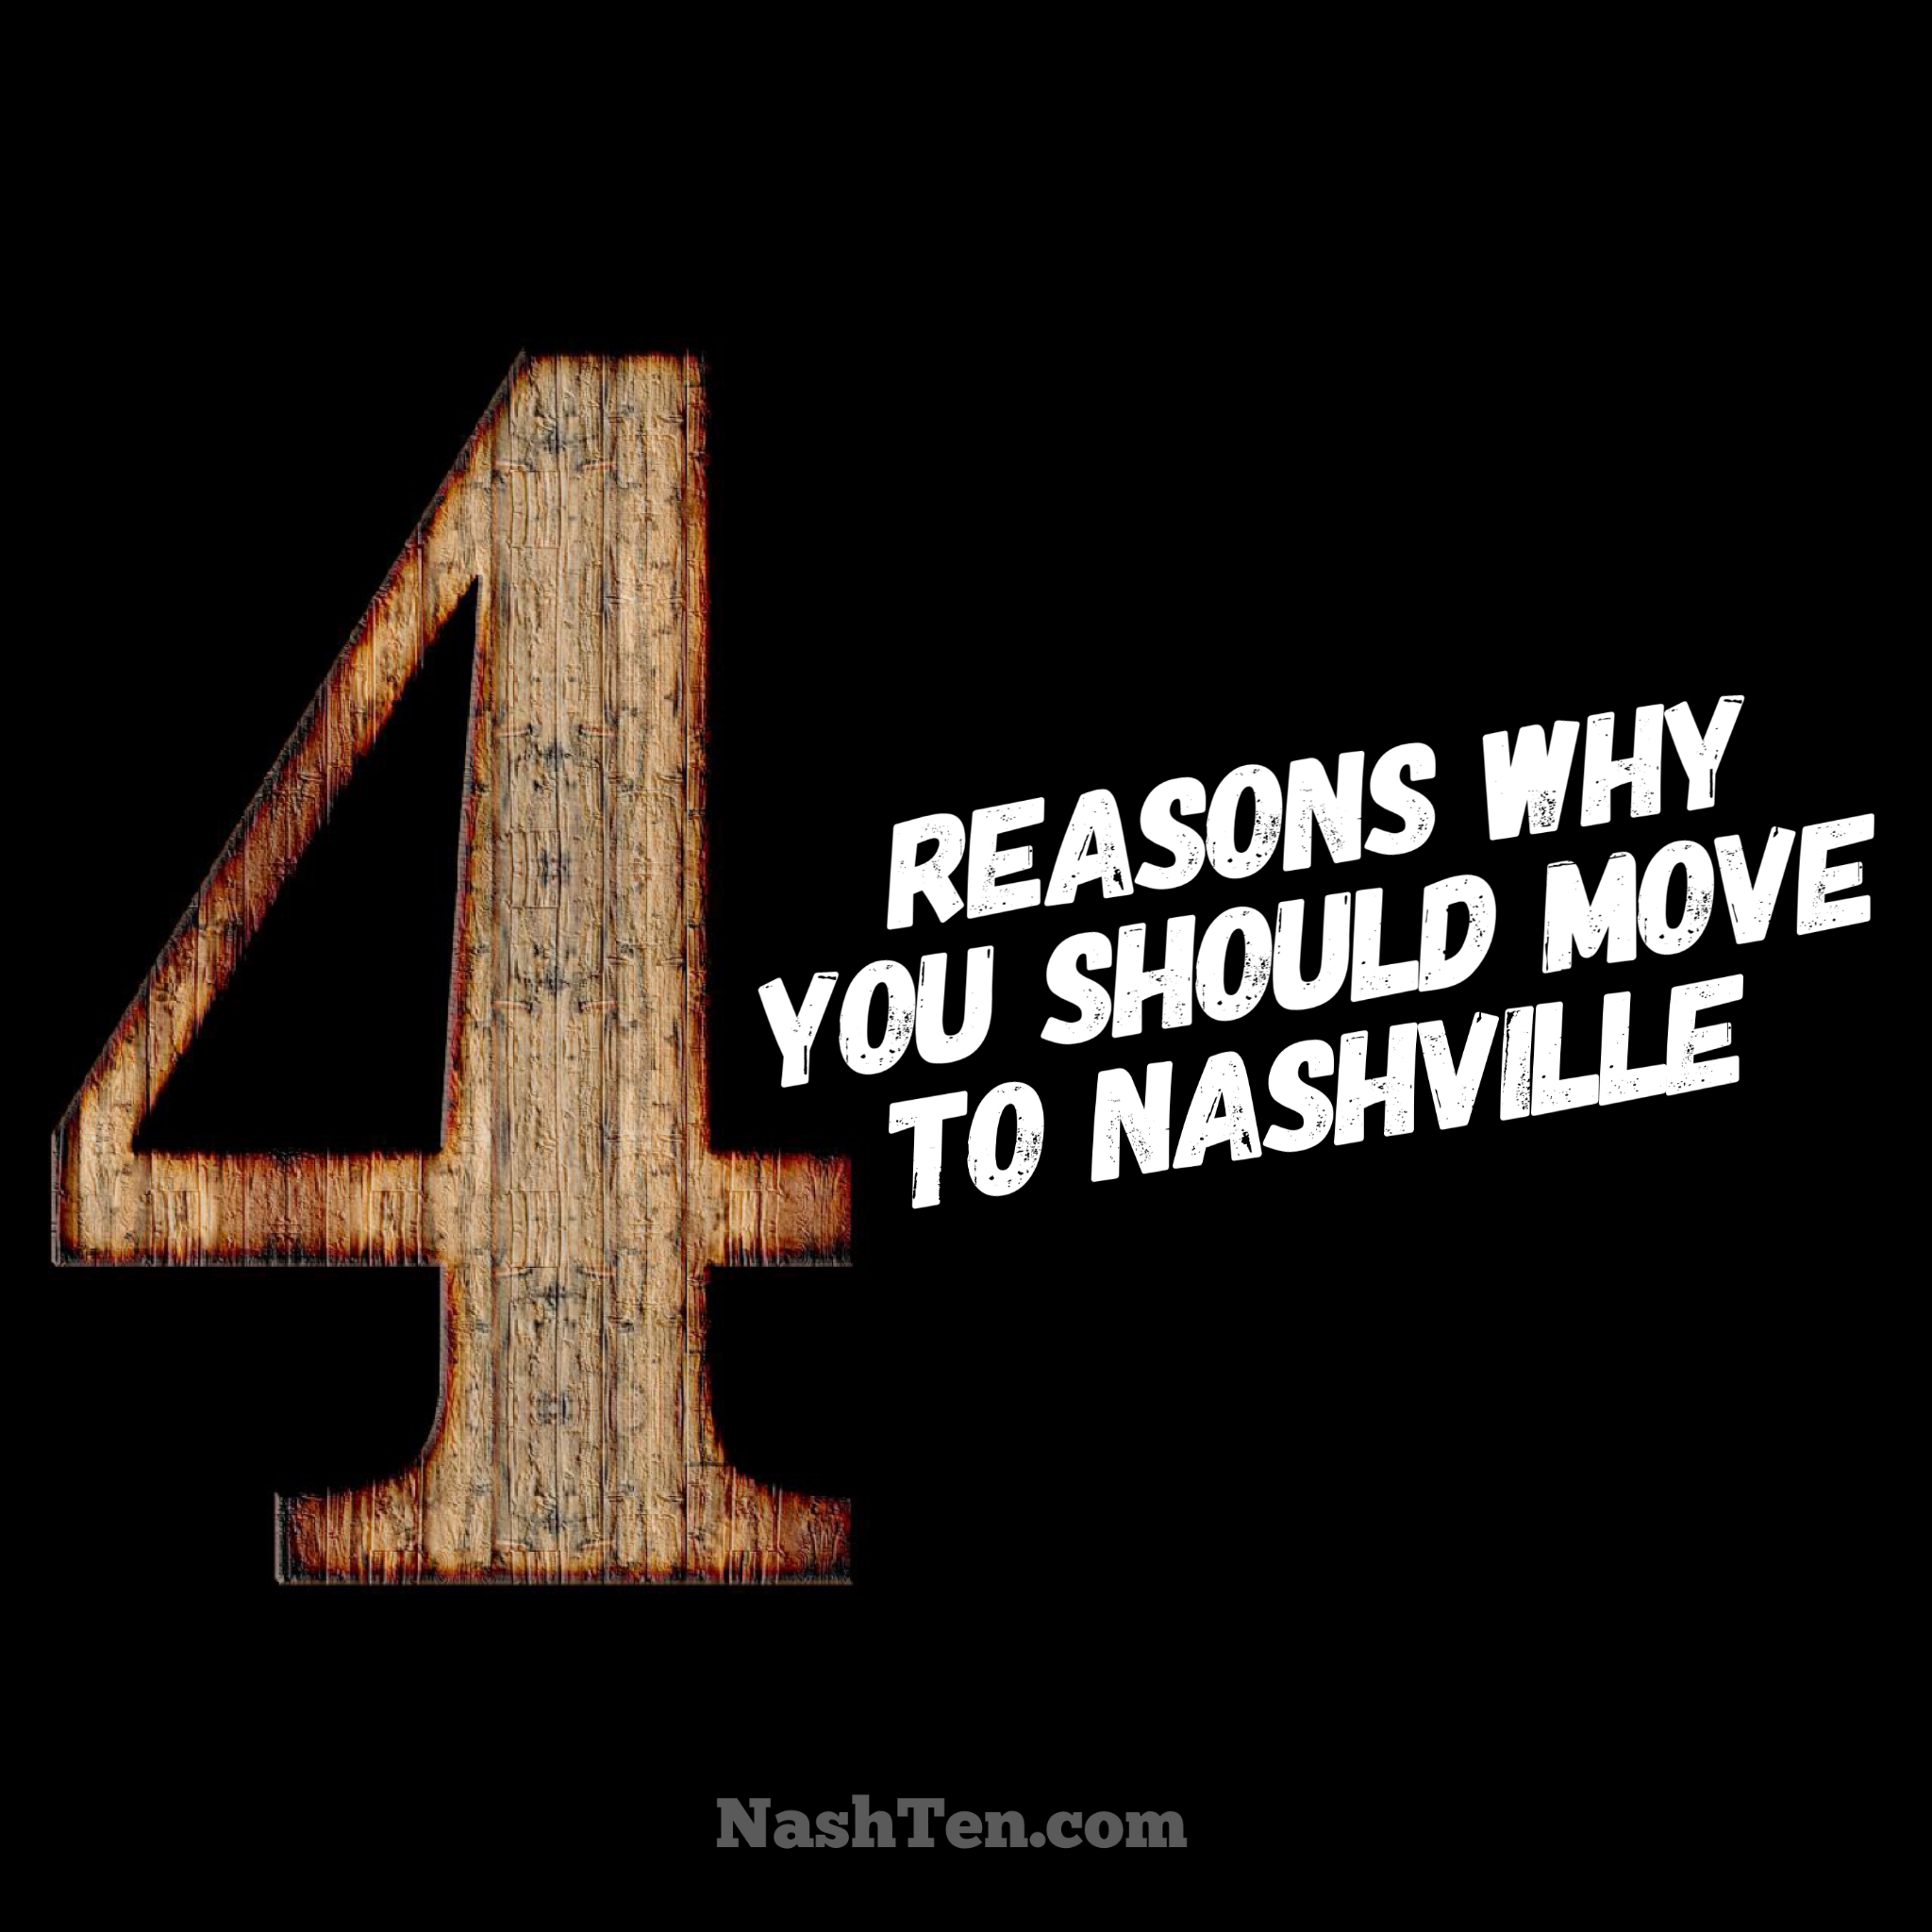 4 reasons why you should move to Nashville